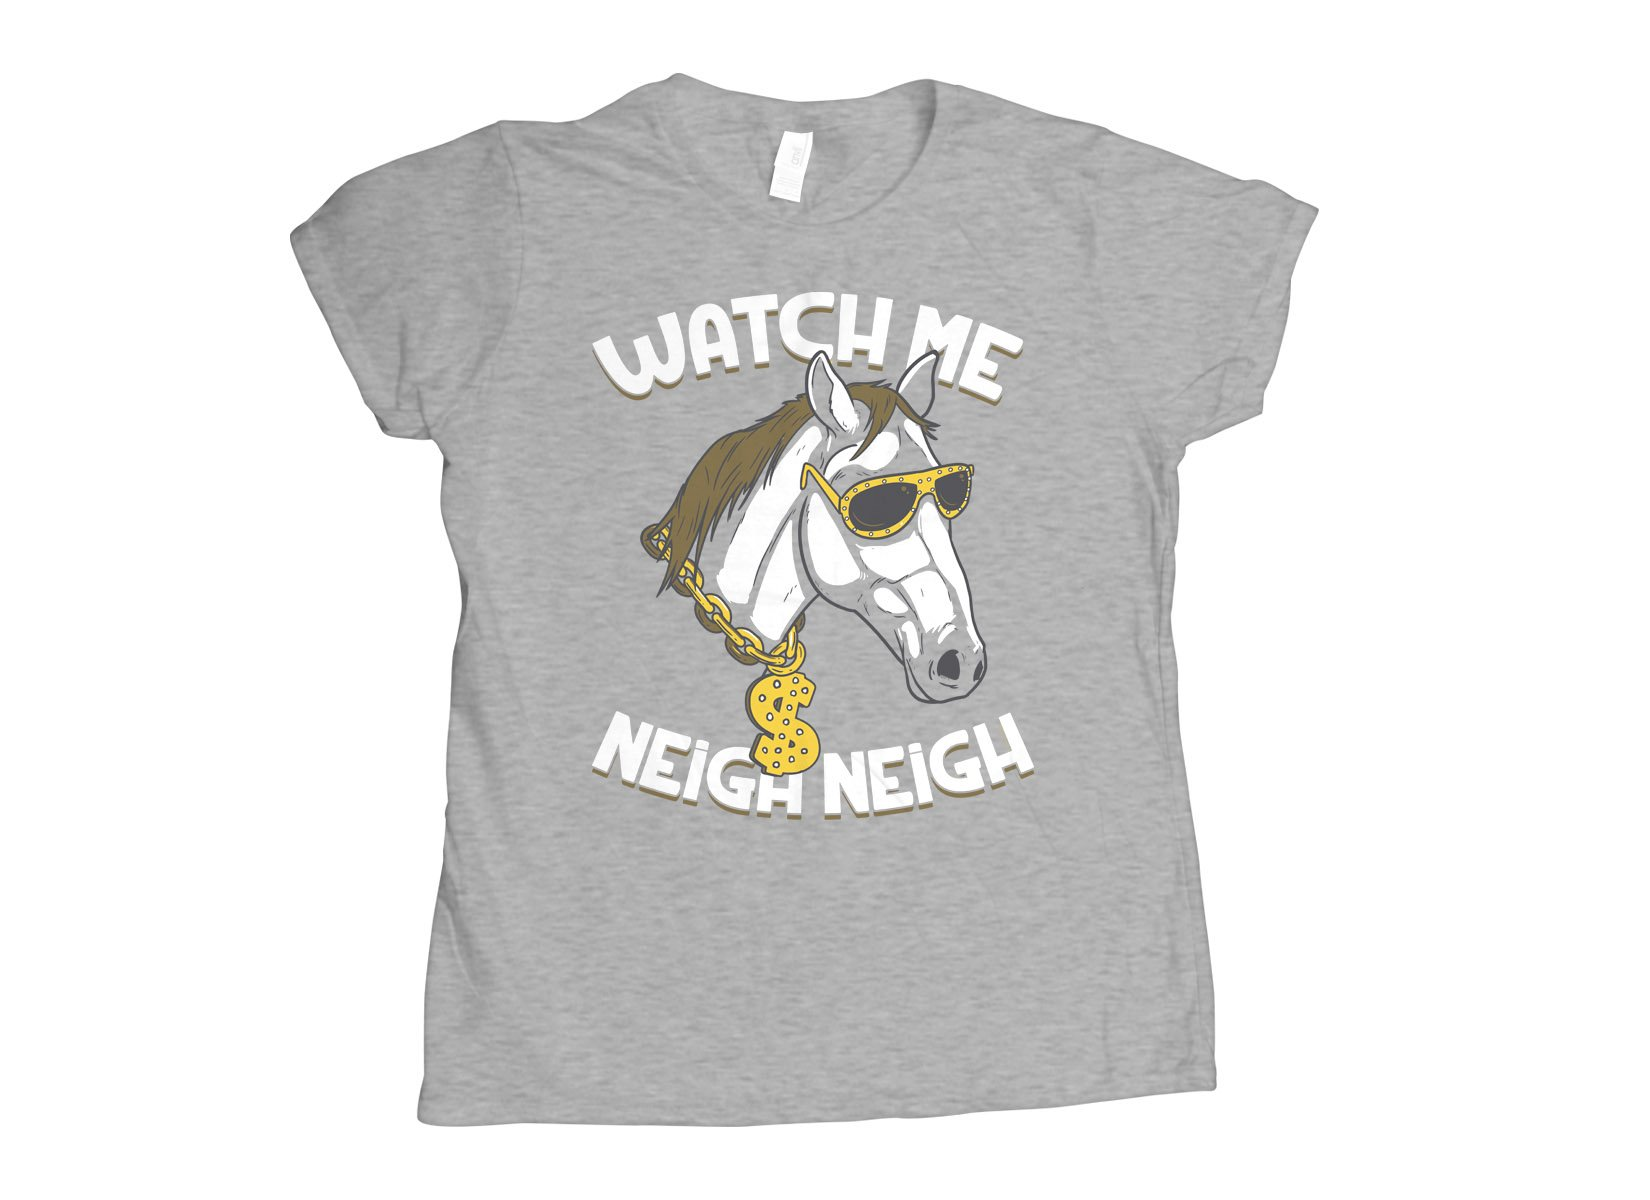 Watch Me Neigh Neigh on Womens T-Shirt